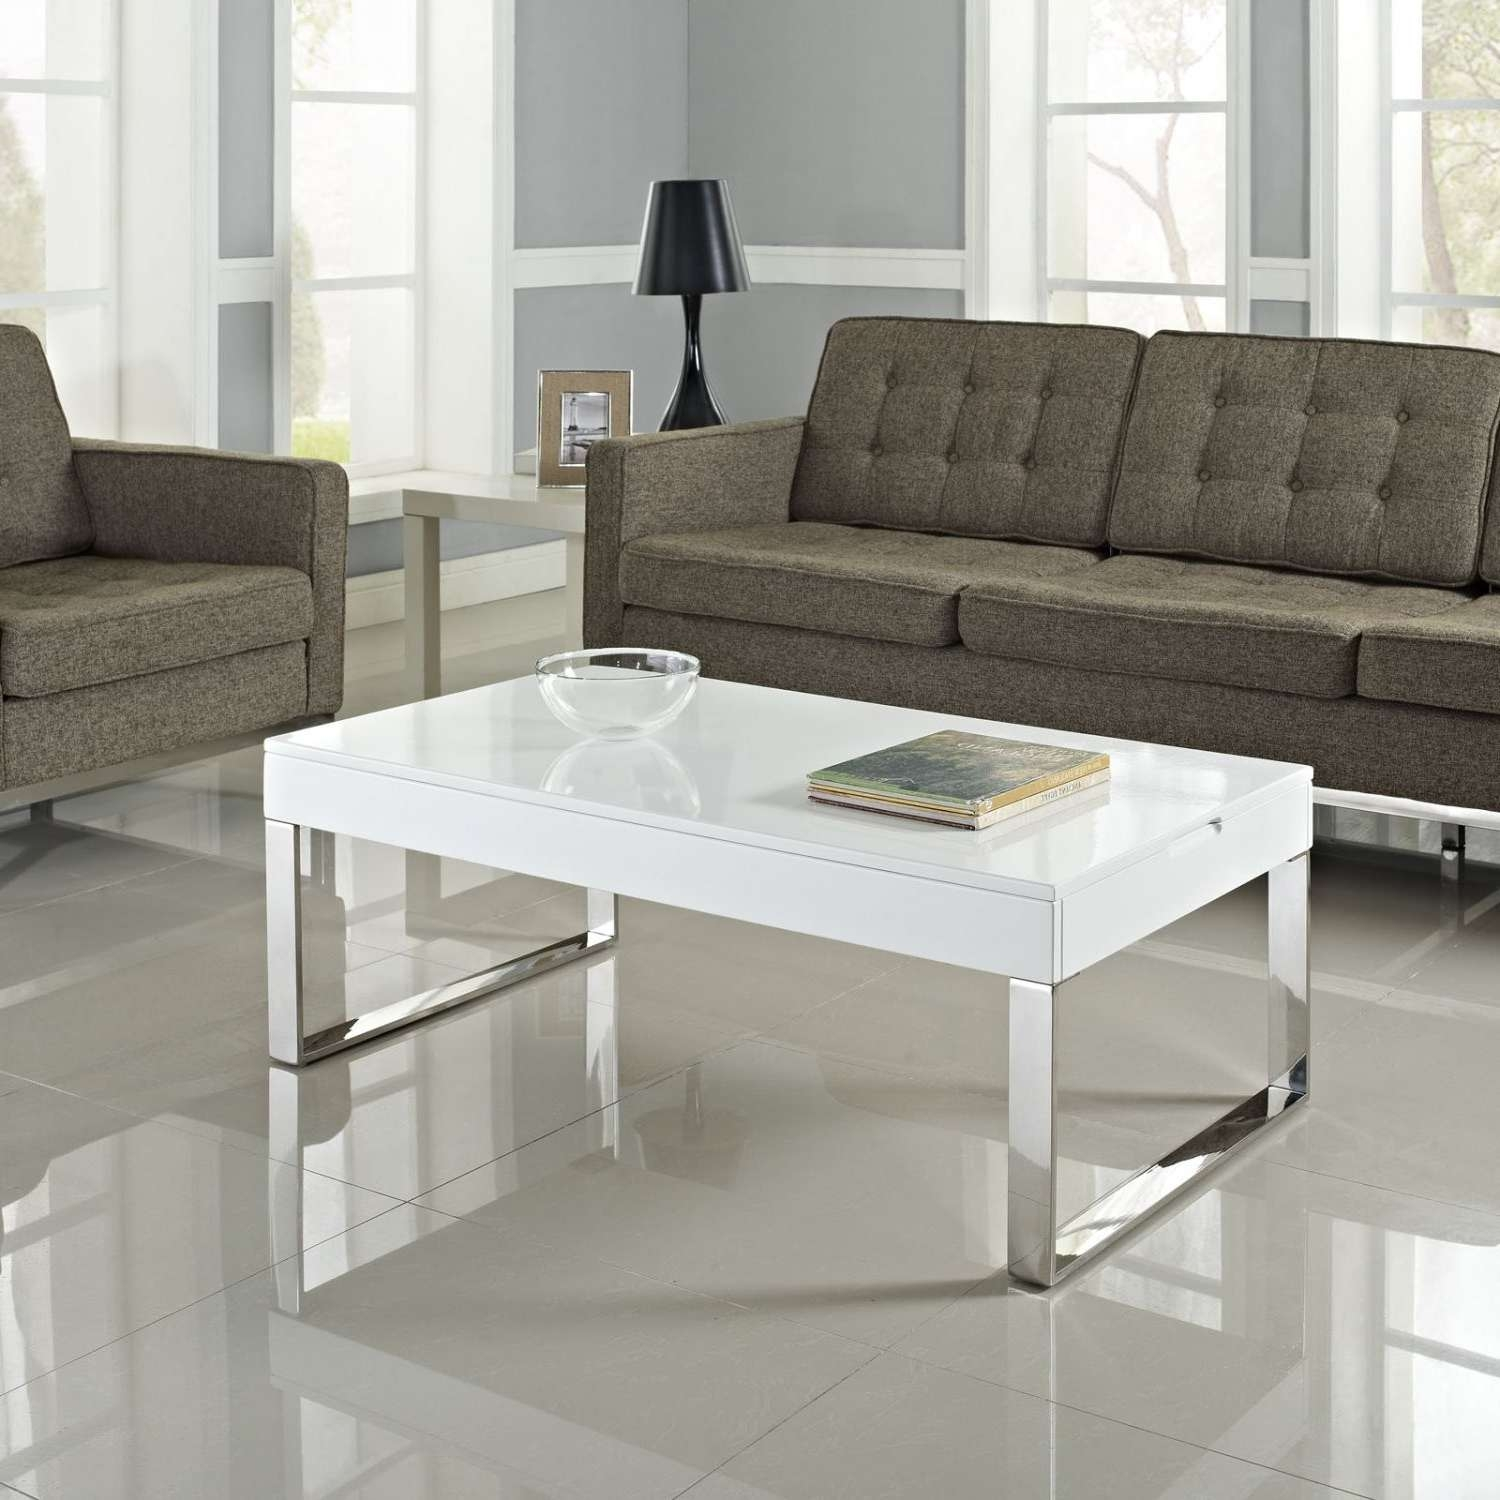 Widely Used High Gloss Coffee Tables Inside White Gloss Lift Coffee Table – All Furniture Usa (View 16 of 20)